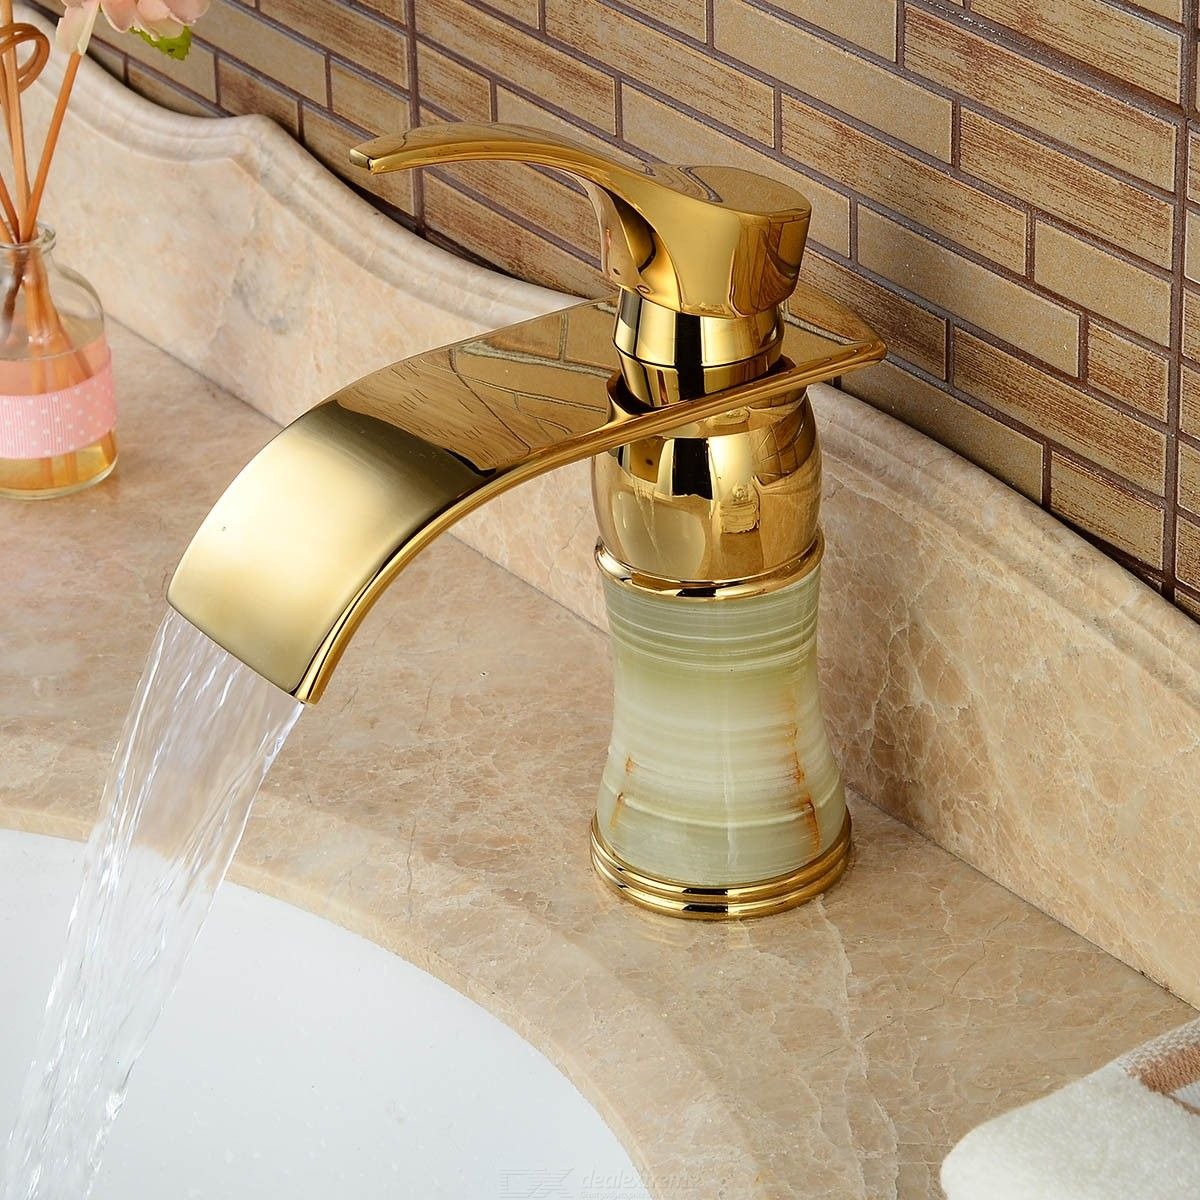 Brass Deck Mounted Ceramic Valve One Hole Imitation Jade Ti-PVD Bathroom Sink Faucet w/ Single Handle